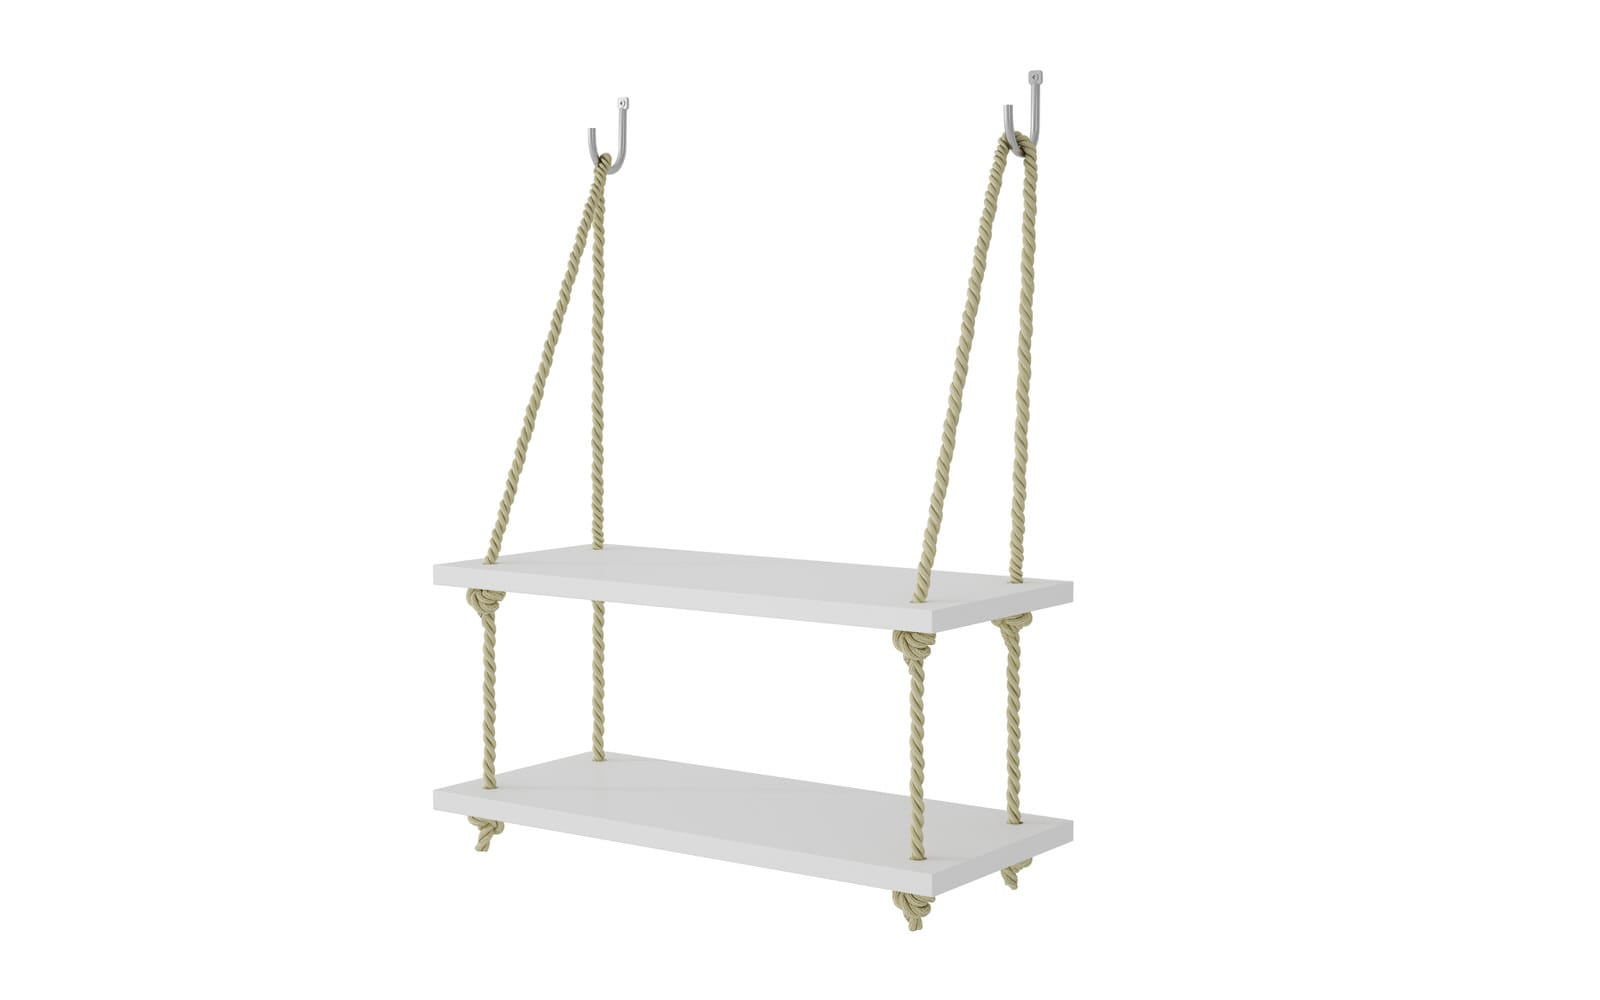 Uptown White 20 - 1752 Inch Rope Swing W/ 2 Shelves By Manhattan Comfort